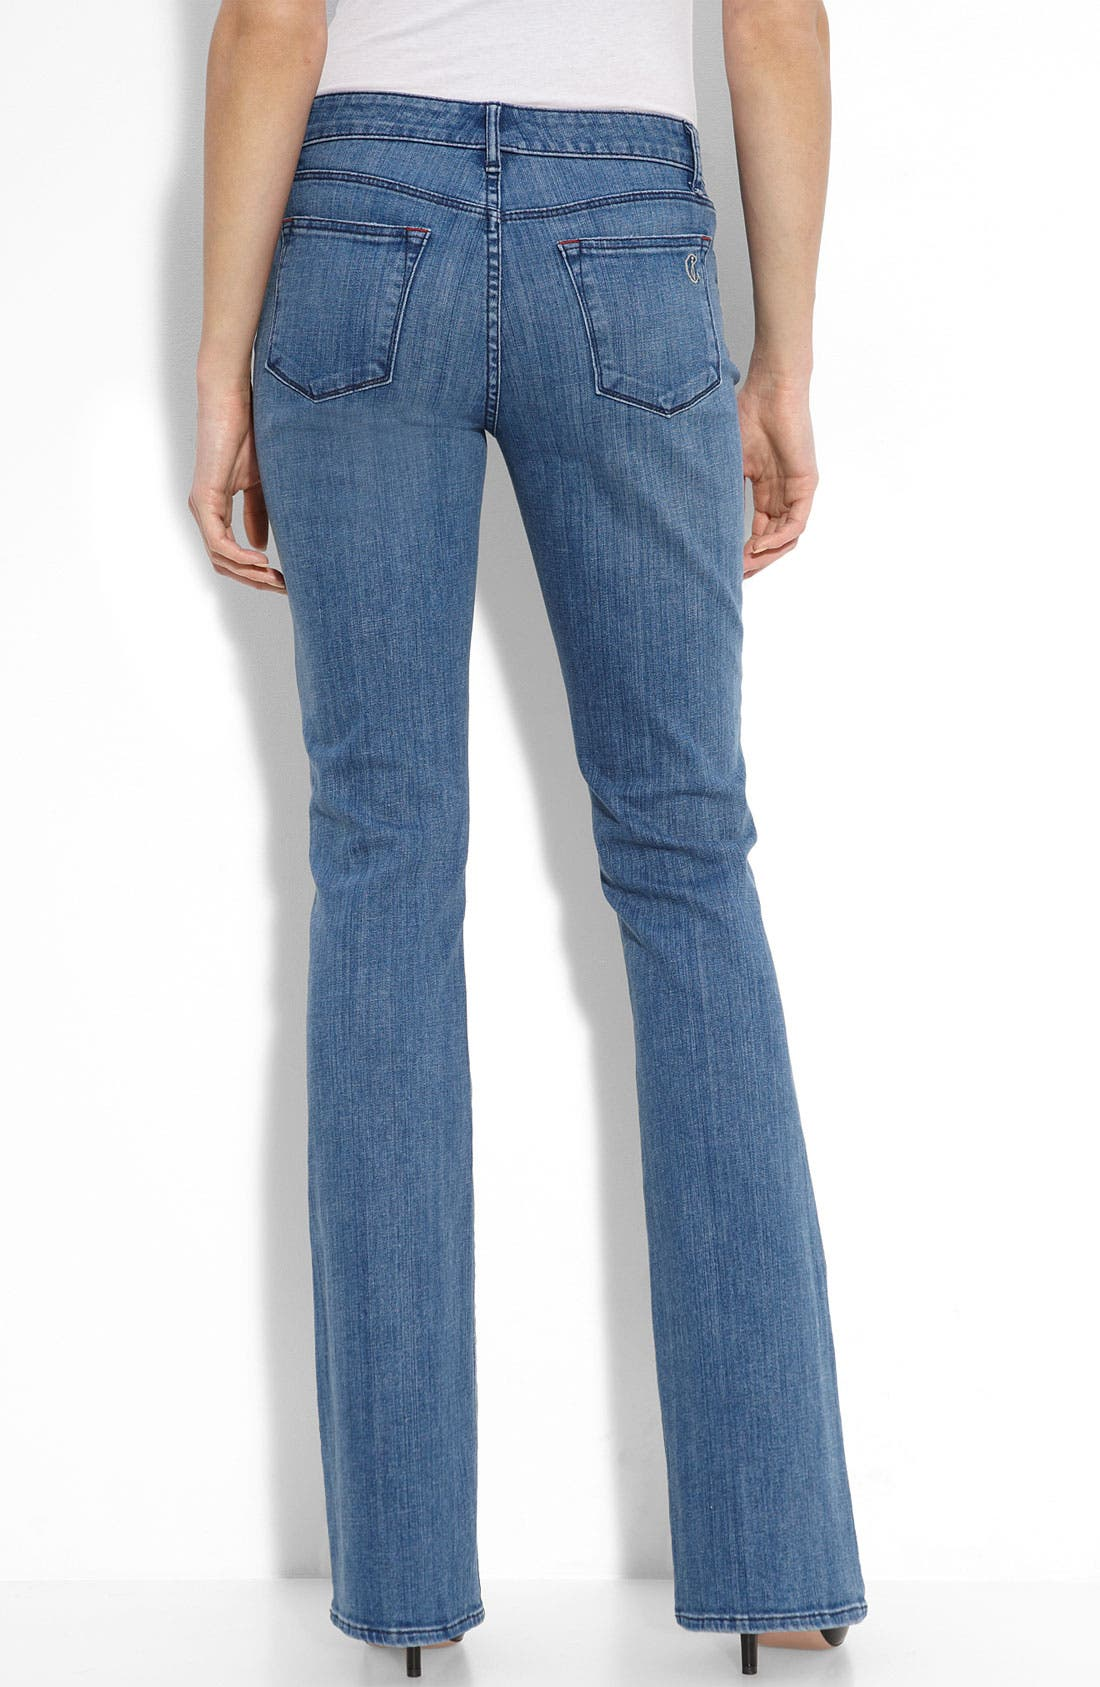 Main Image - CJ by Cookie Johnson 'Grace' Bootcut Jeans (Shaol Wash)